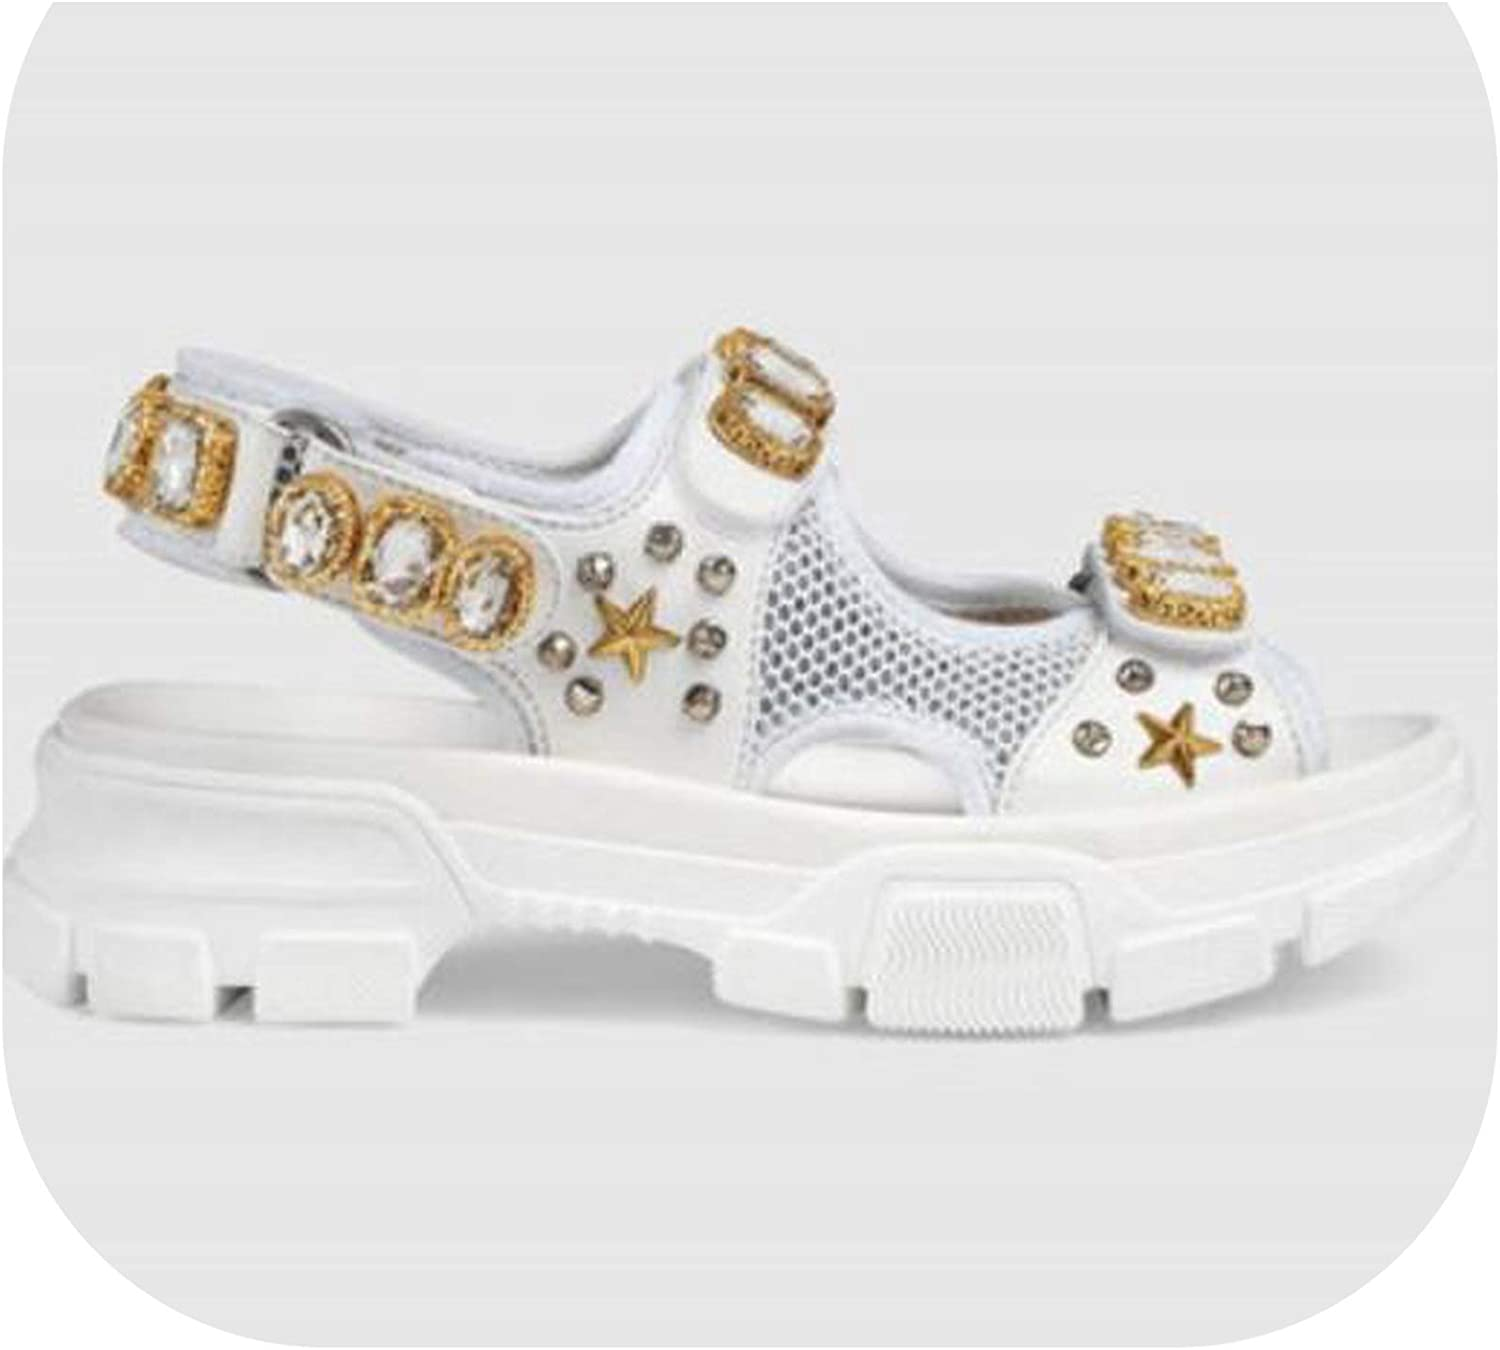 Meiguiyuan Leather and Mesh Women Sandals Chunky Sole Crystals and Rivets Summer Women shoes